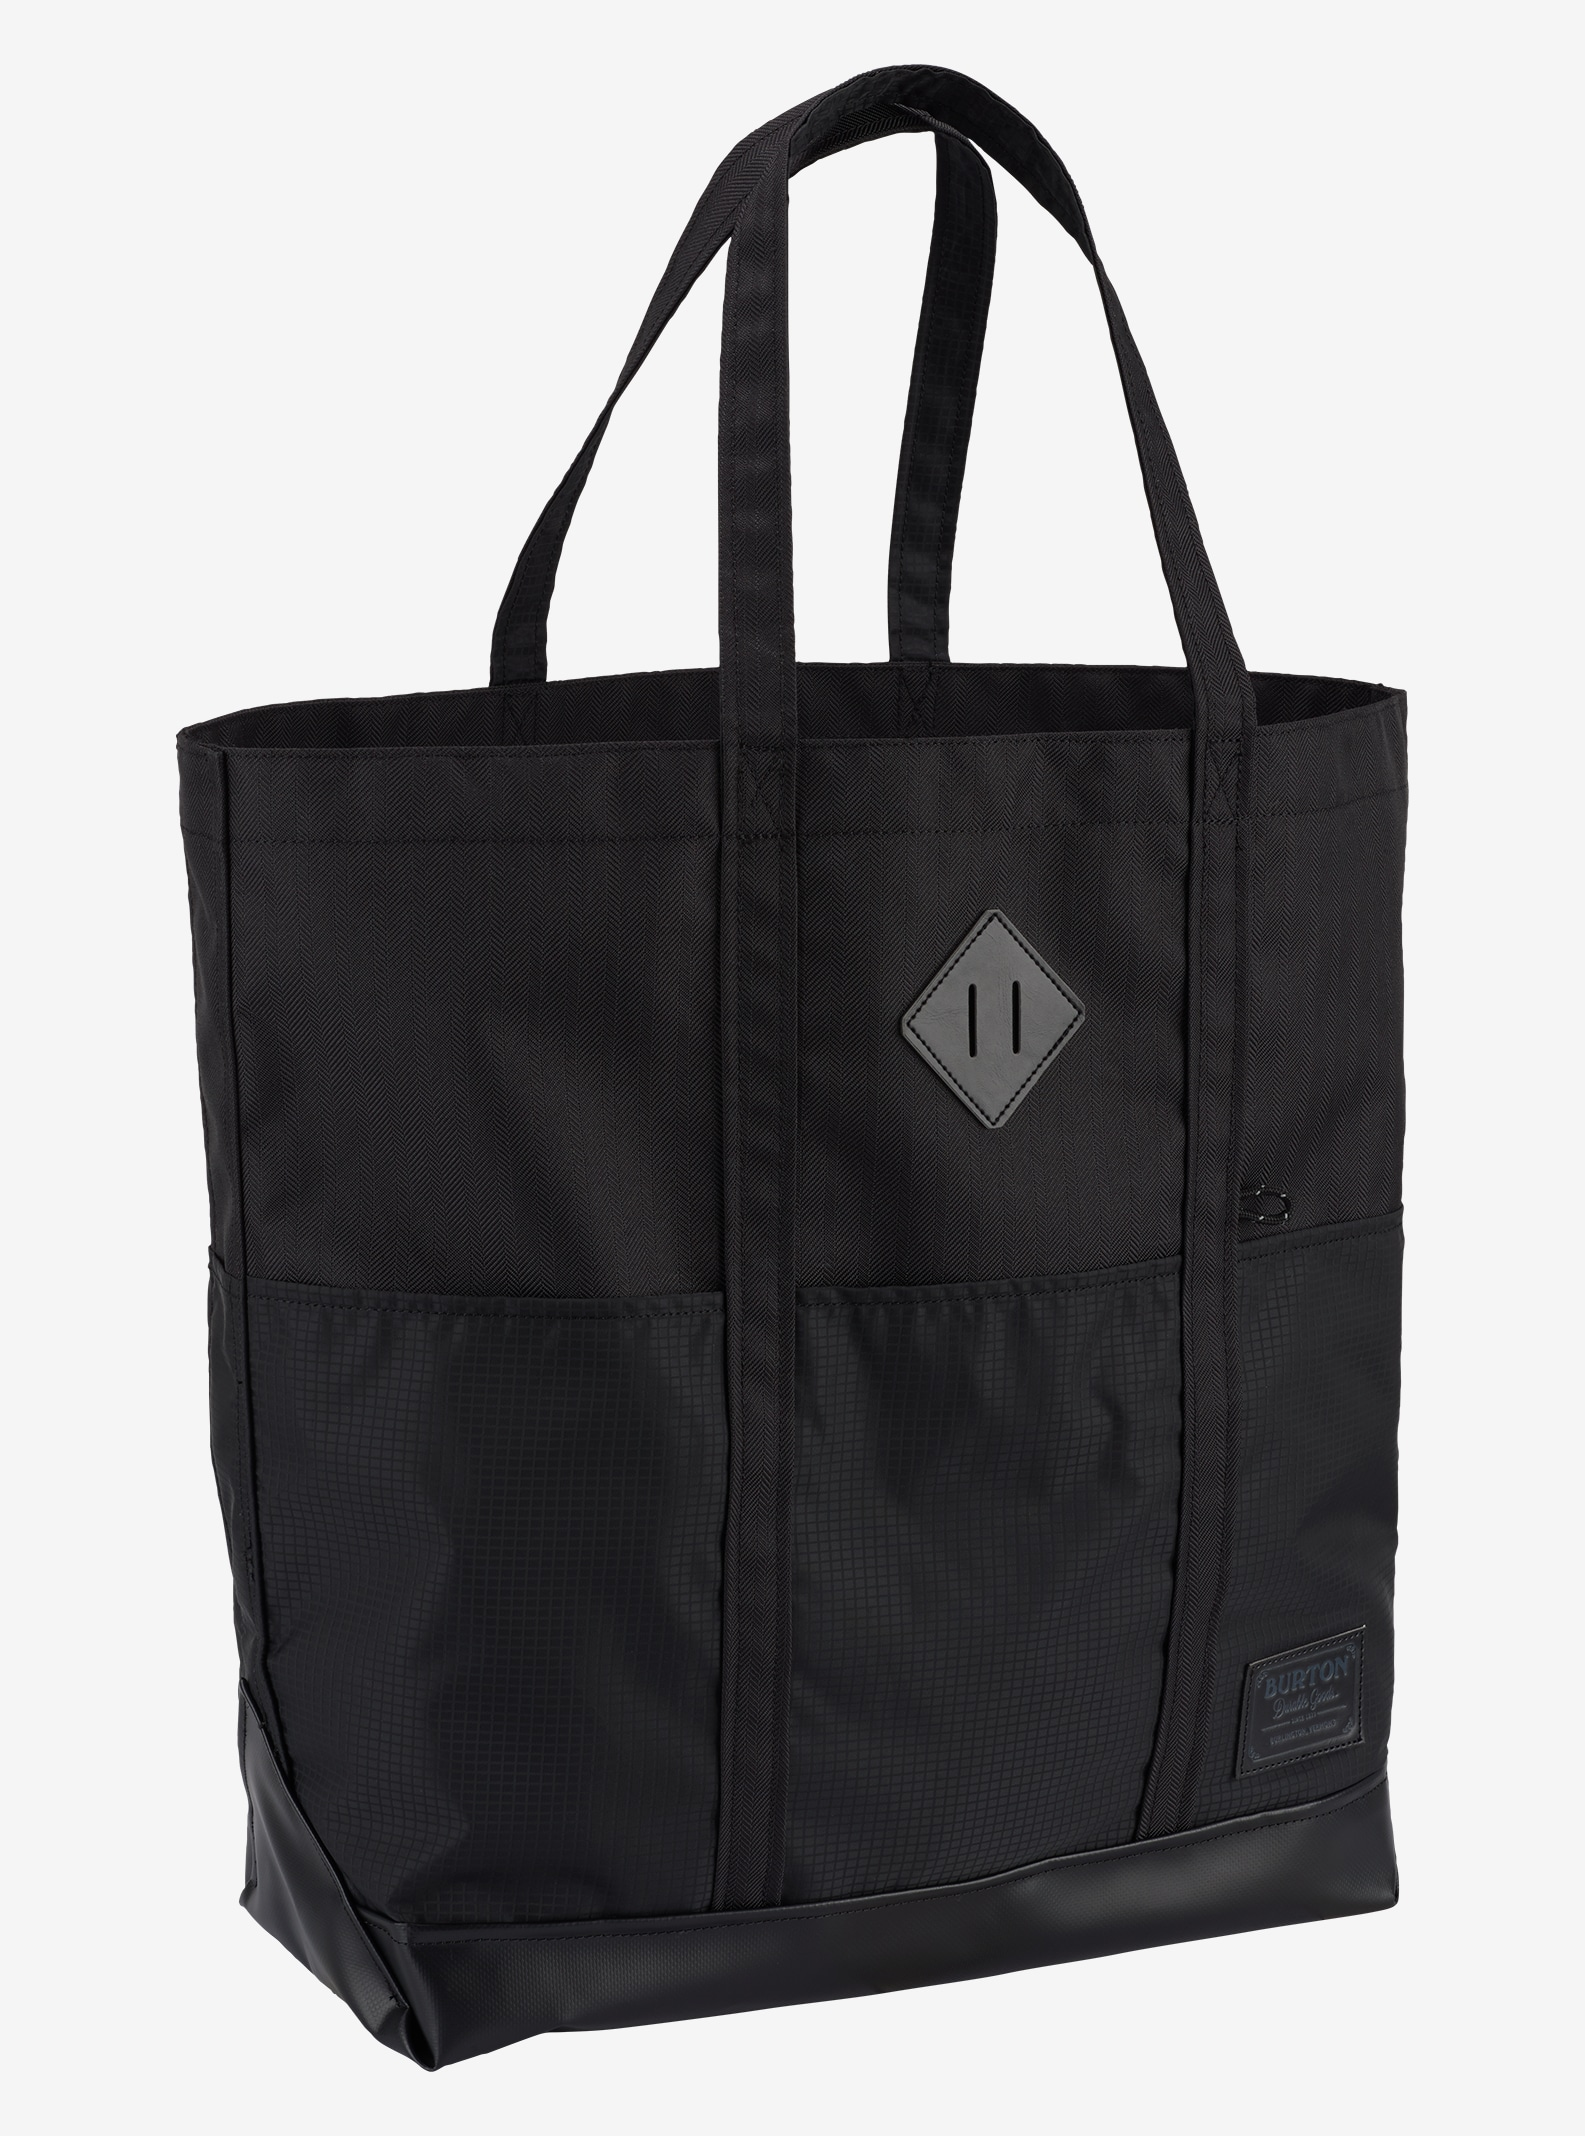 Burton Crate Tote Bag - Large shown in True Black Heather Twill